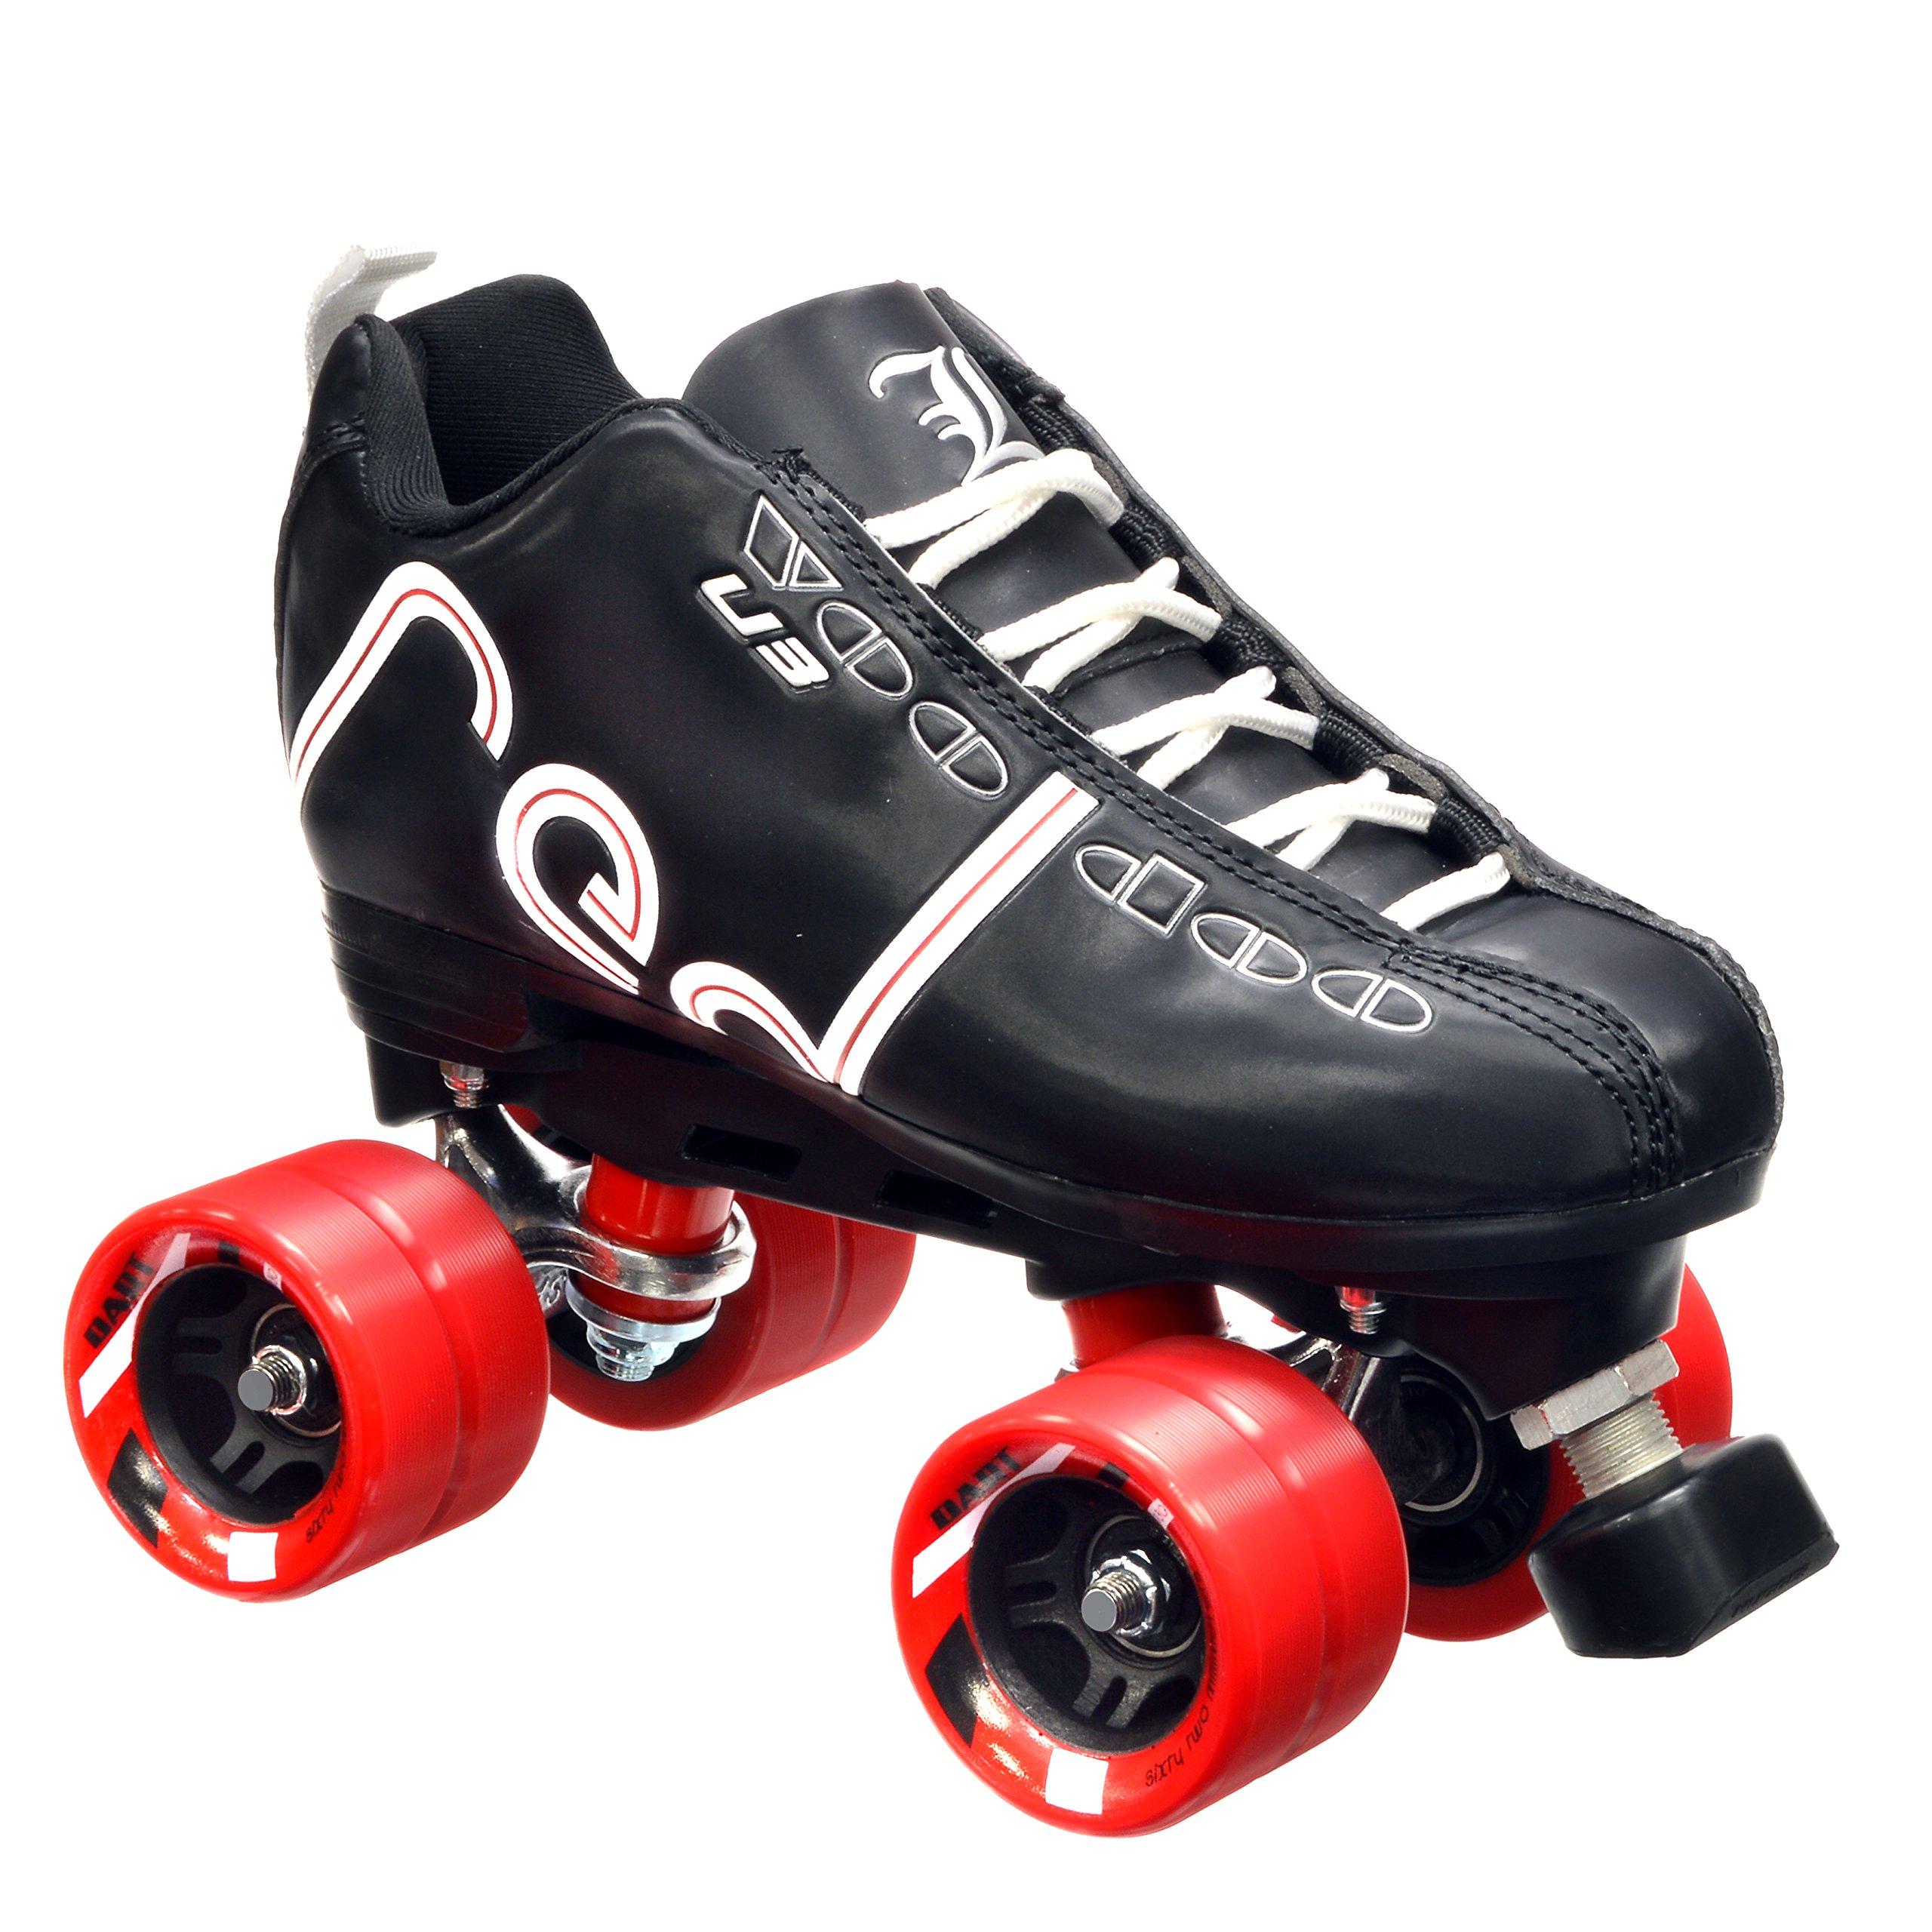 New! Labeda Voodoo U3 Quad Roller Speed Skates Customized Black w/ Red Dart Wheels! (Youth 4)